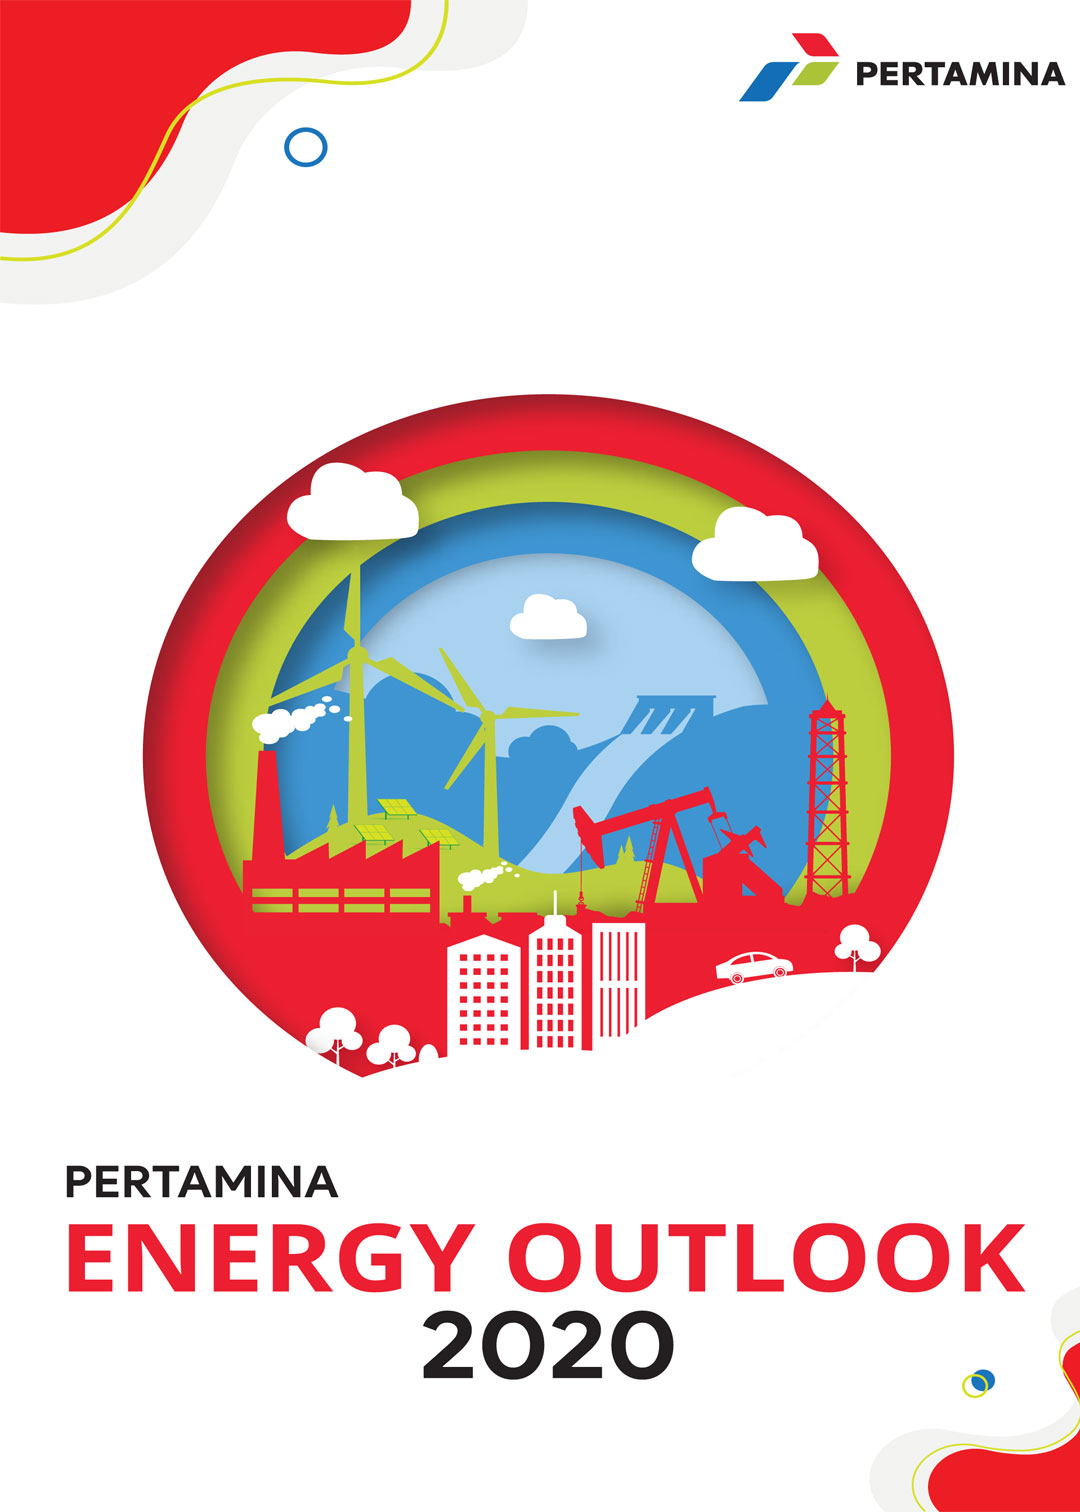 Pertamina Energy Outlook 2020